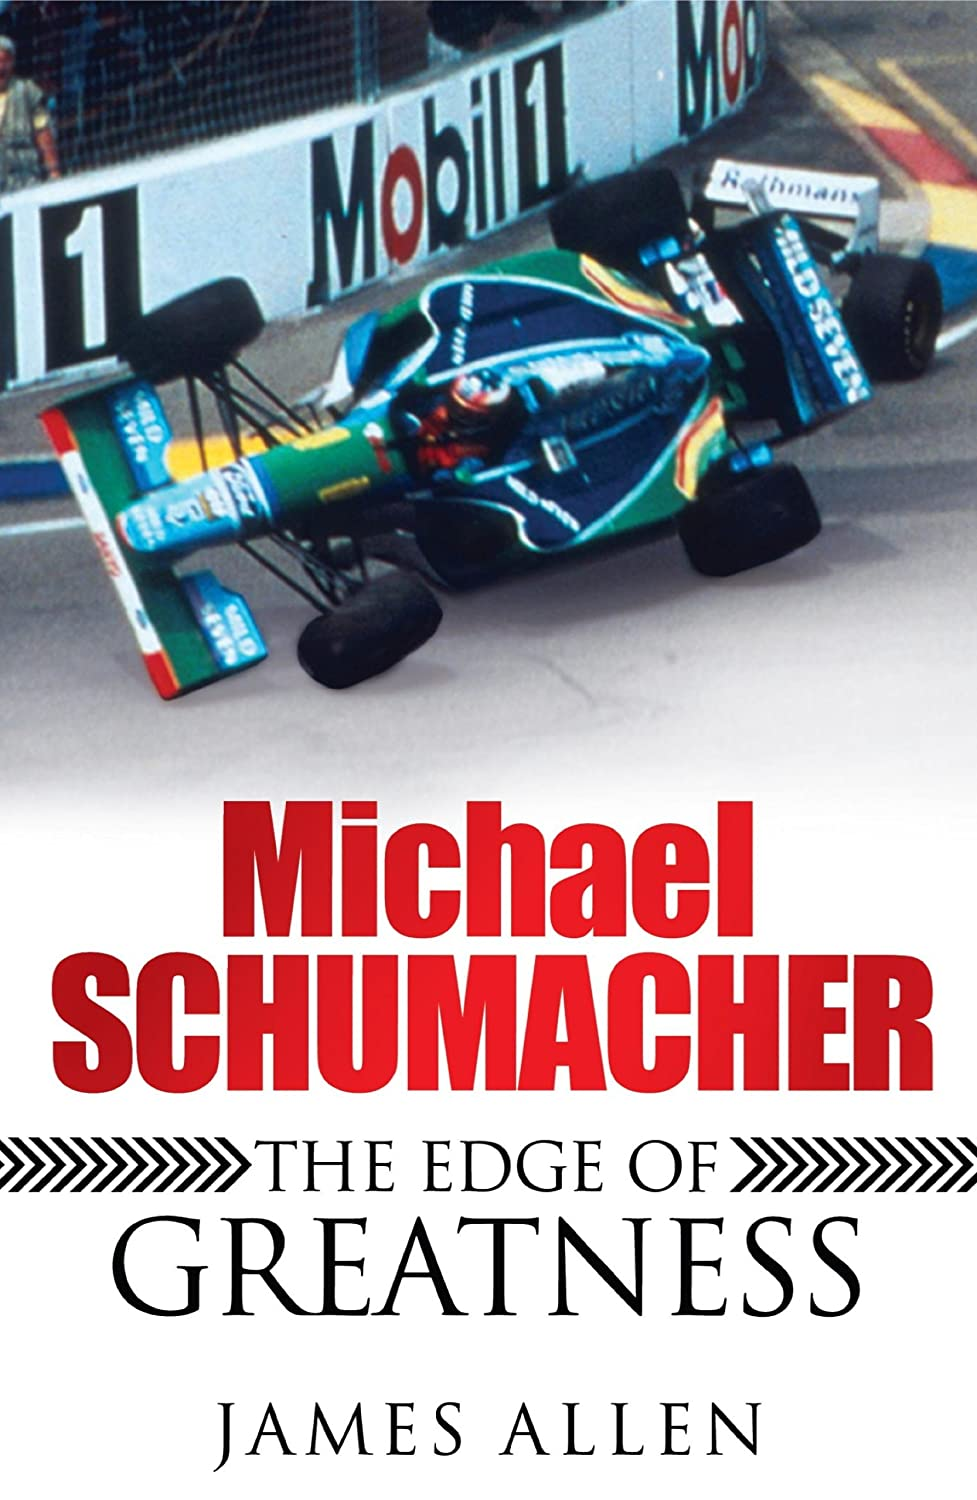 Michael Schumacher: The Edge of Greatness eBook: James